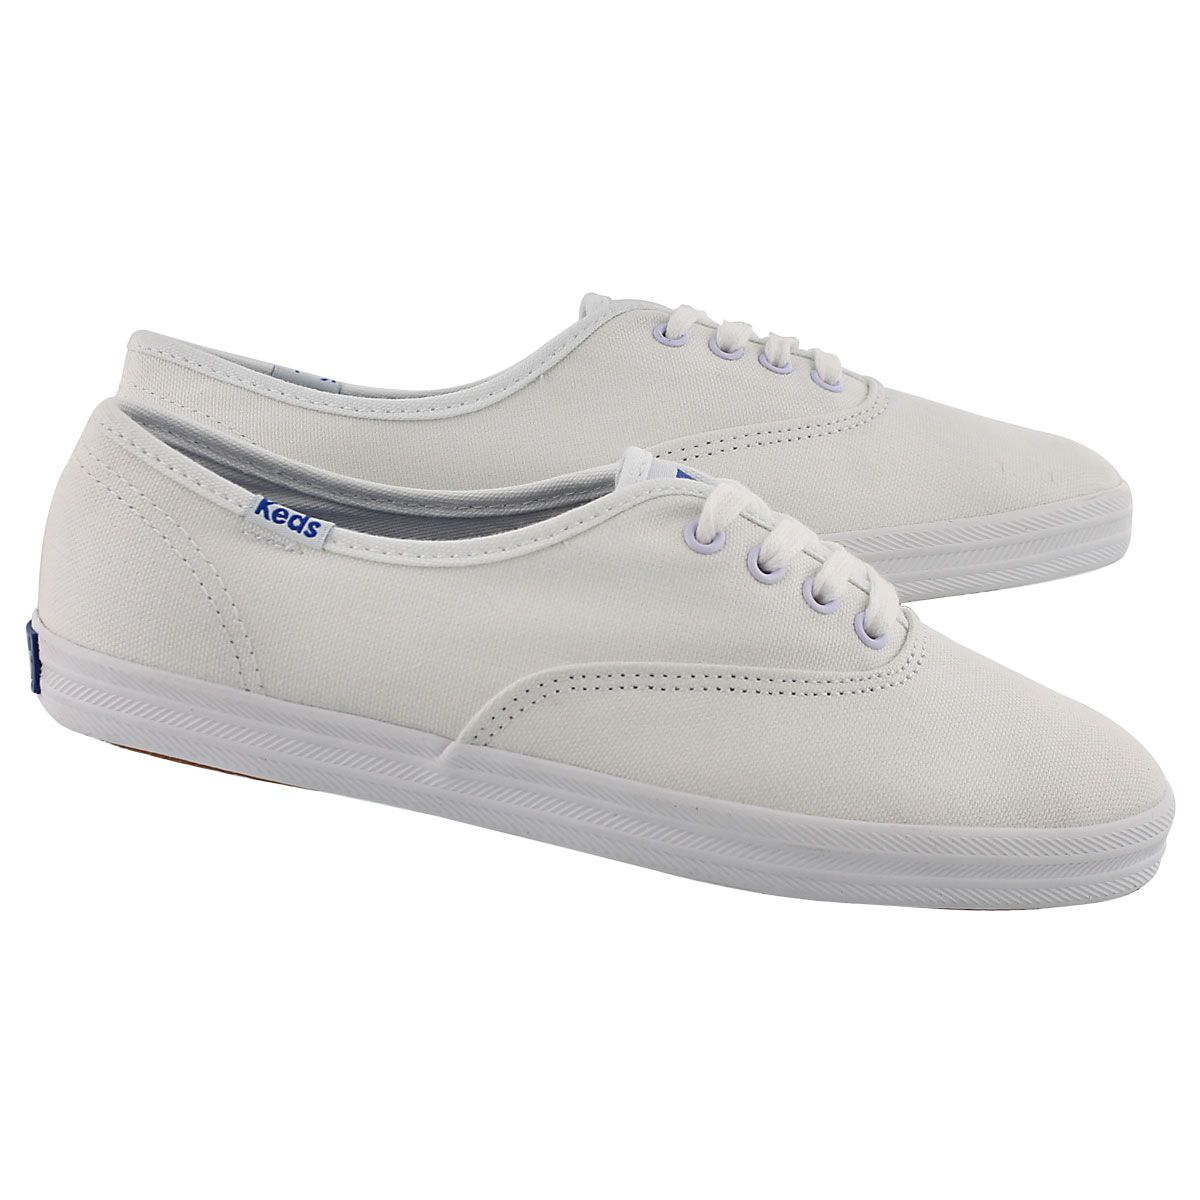 8c3bba35de0 Keds Women s CHAMPION OXFORD white CVO sneakers CHAMPION WHT ...